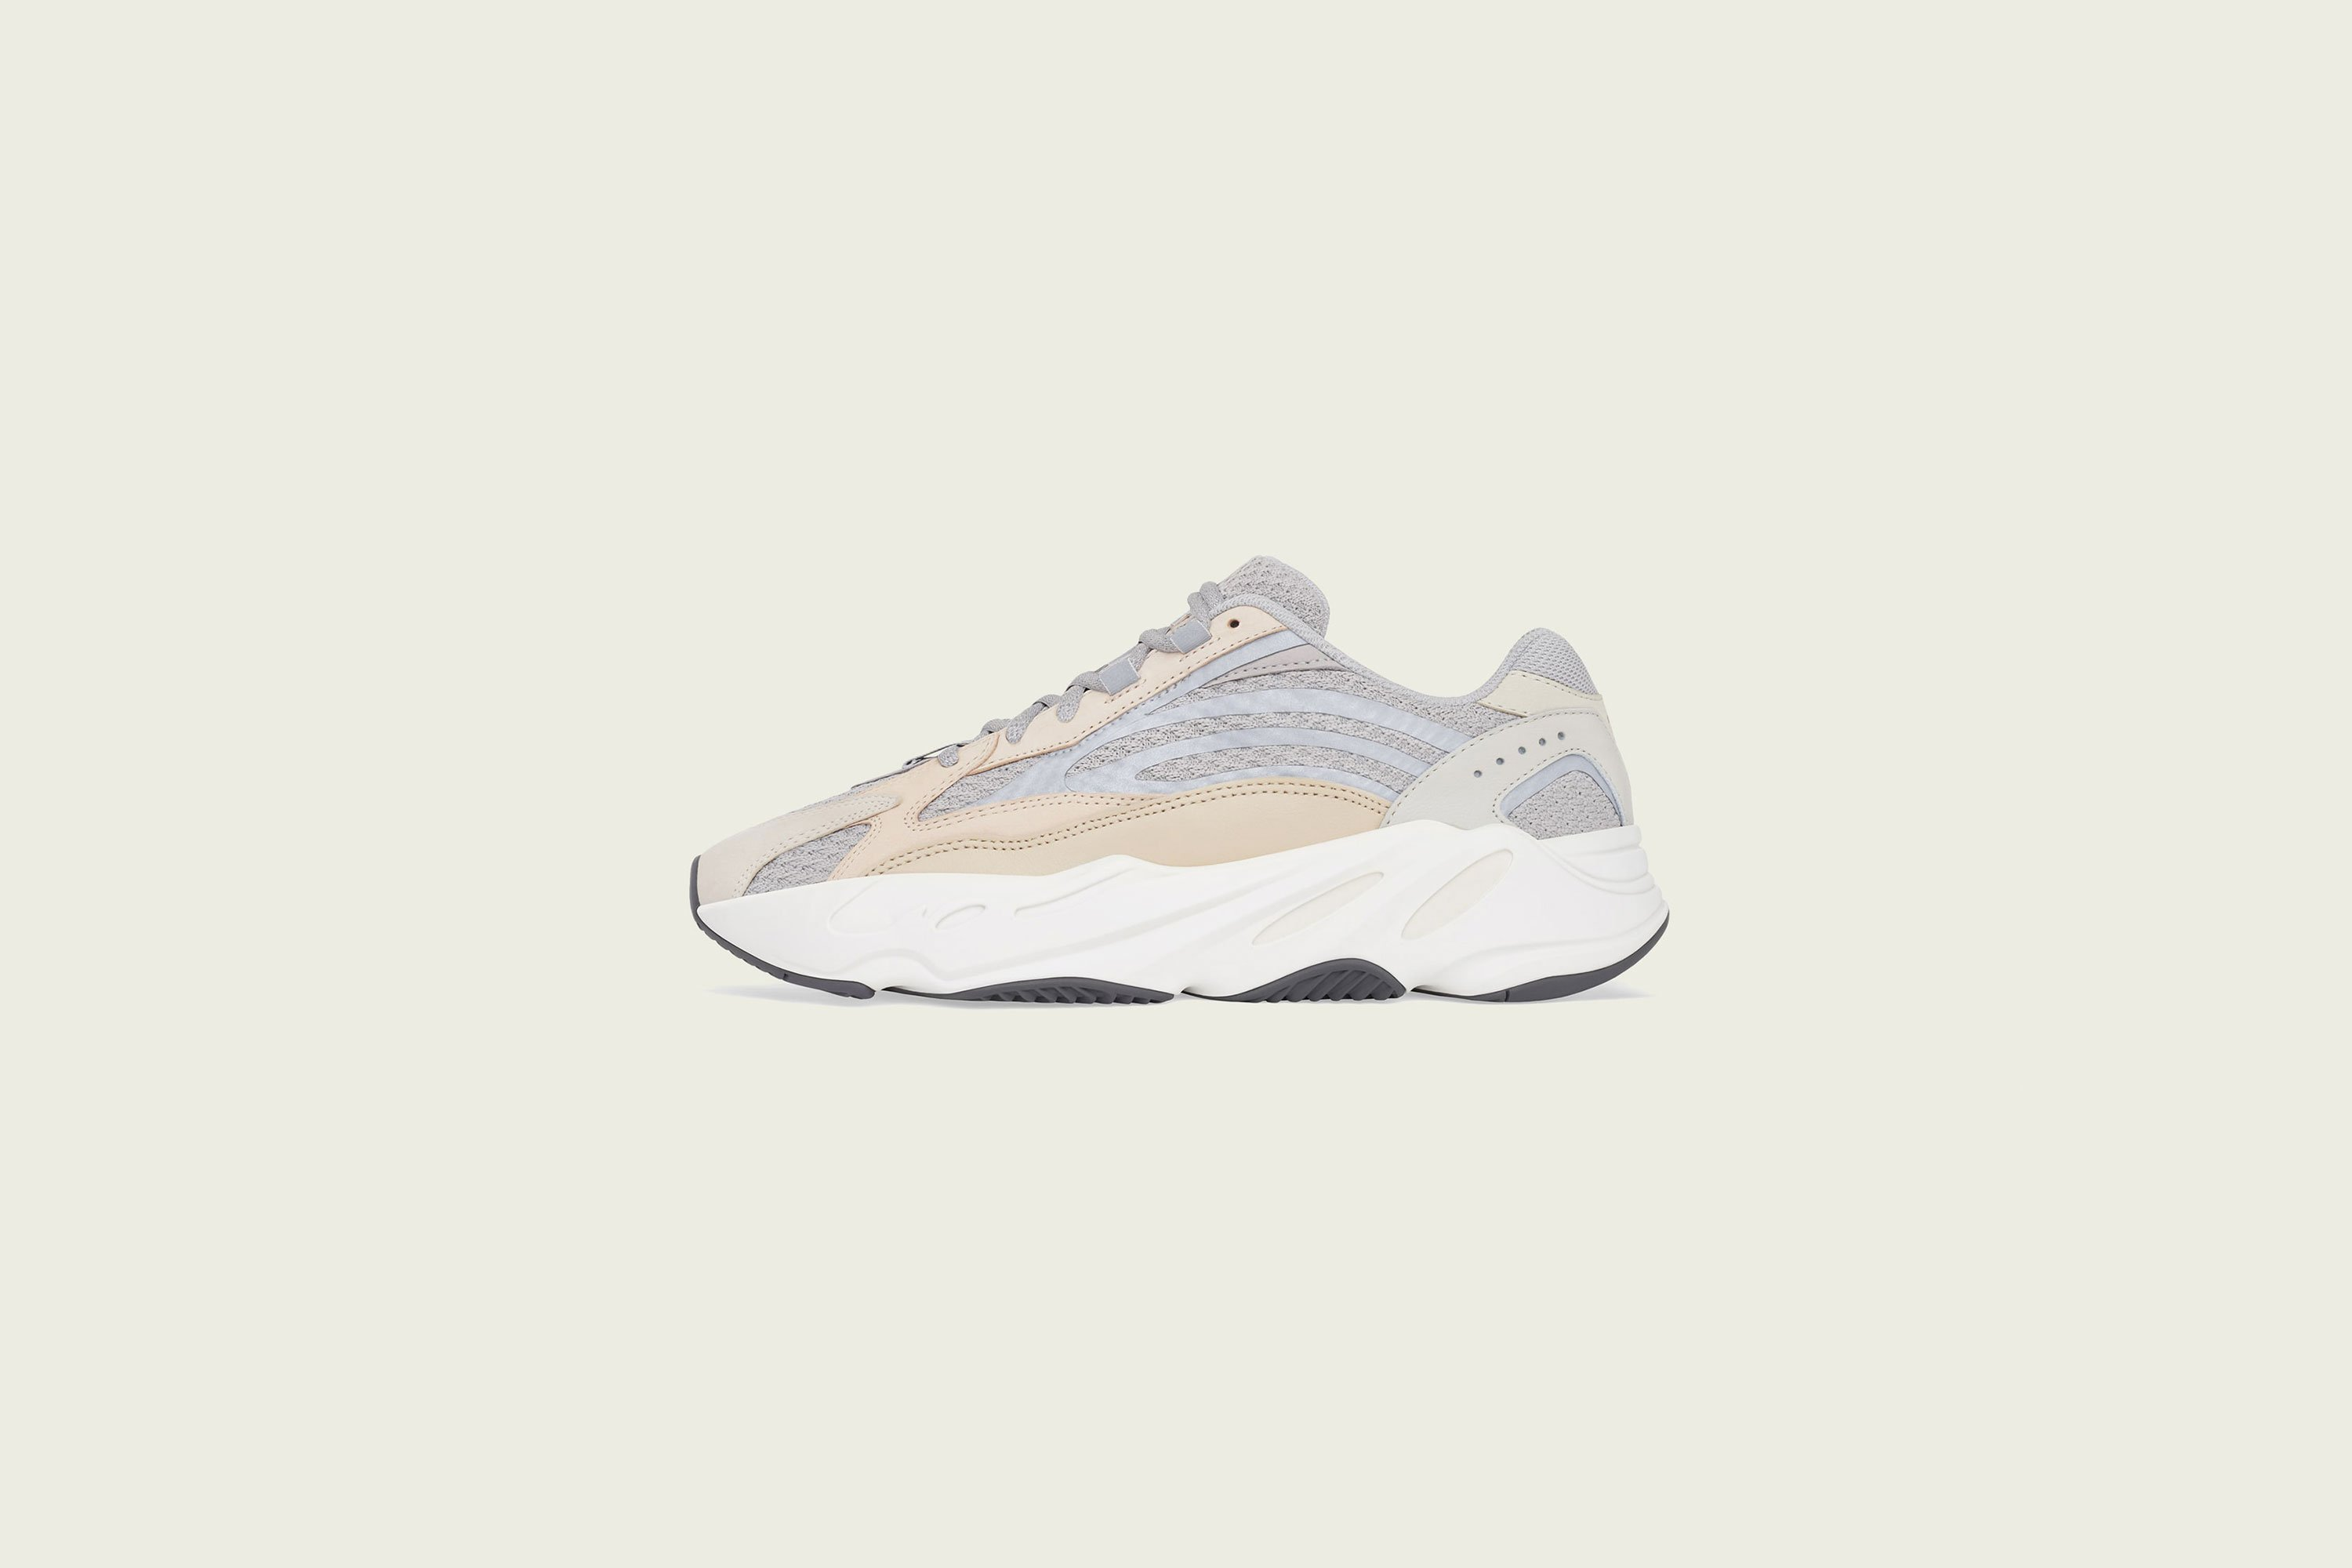 adidas - Yeezy Boost 700v2 - Cream - Up There